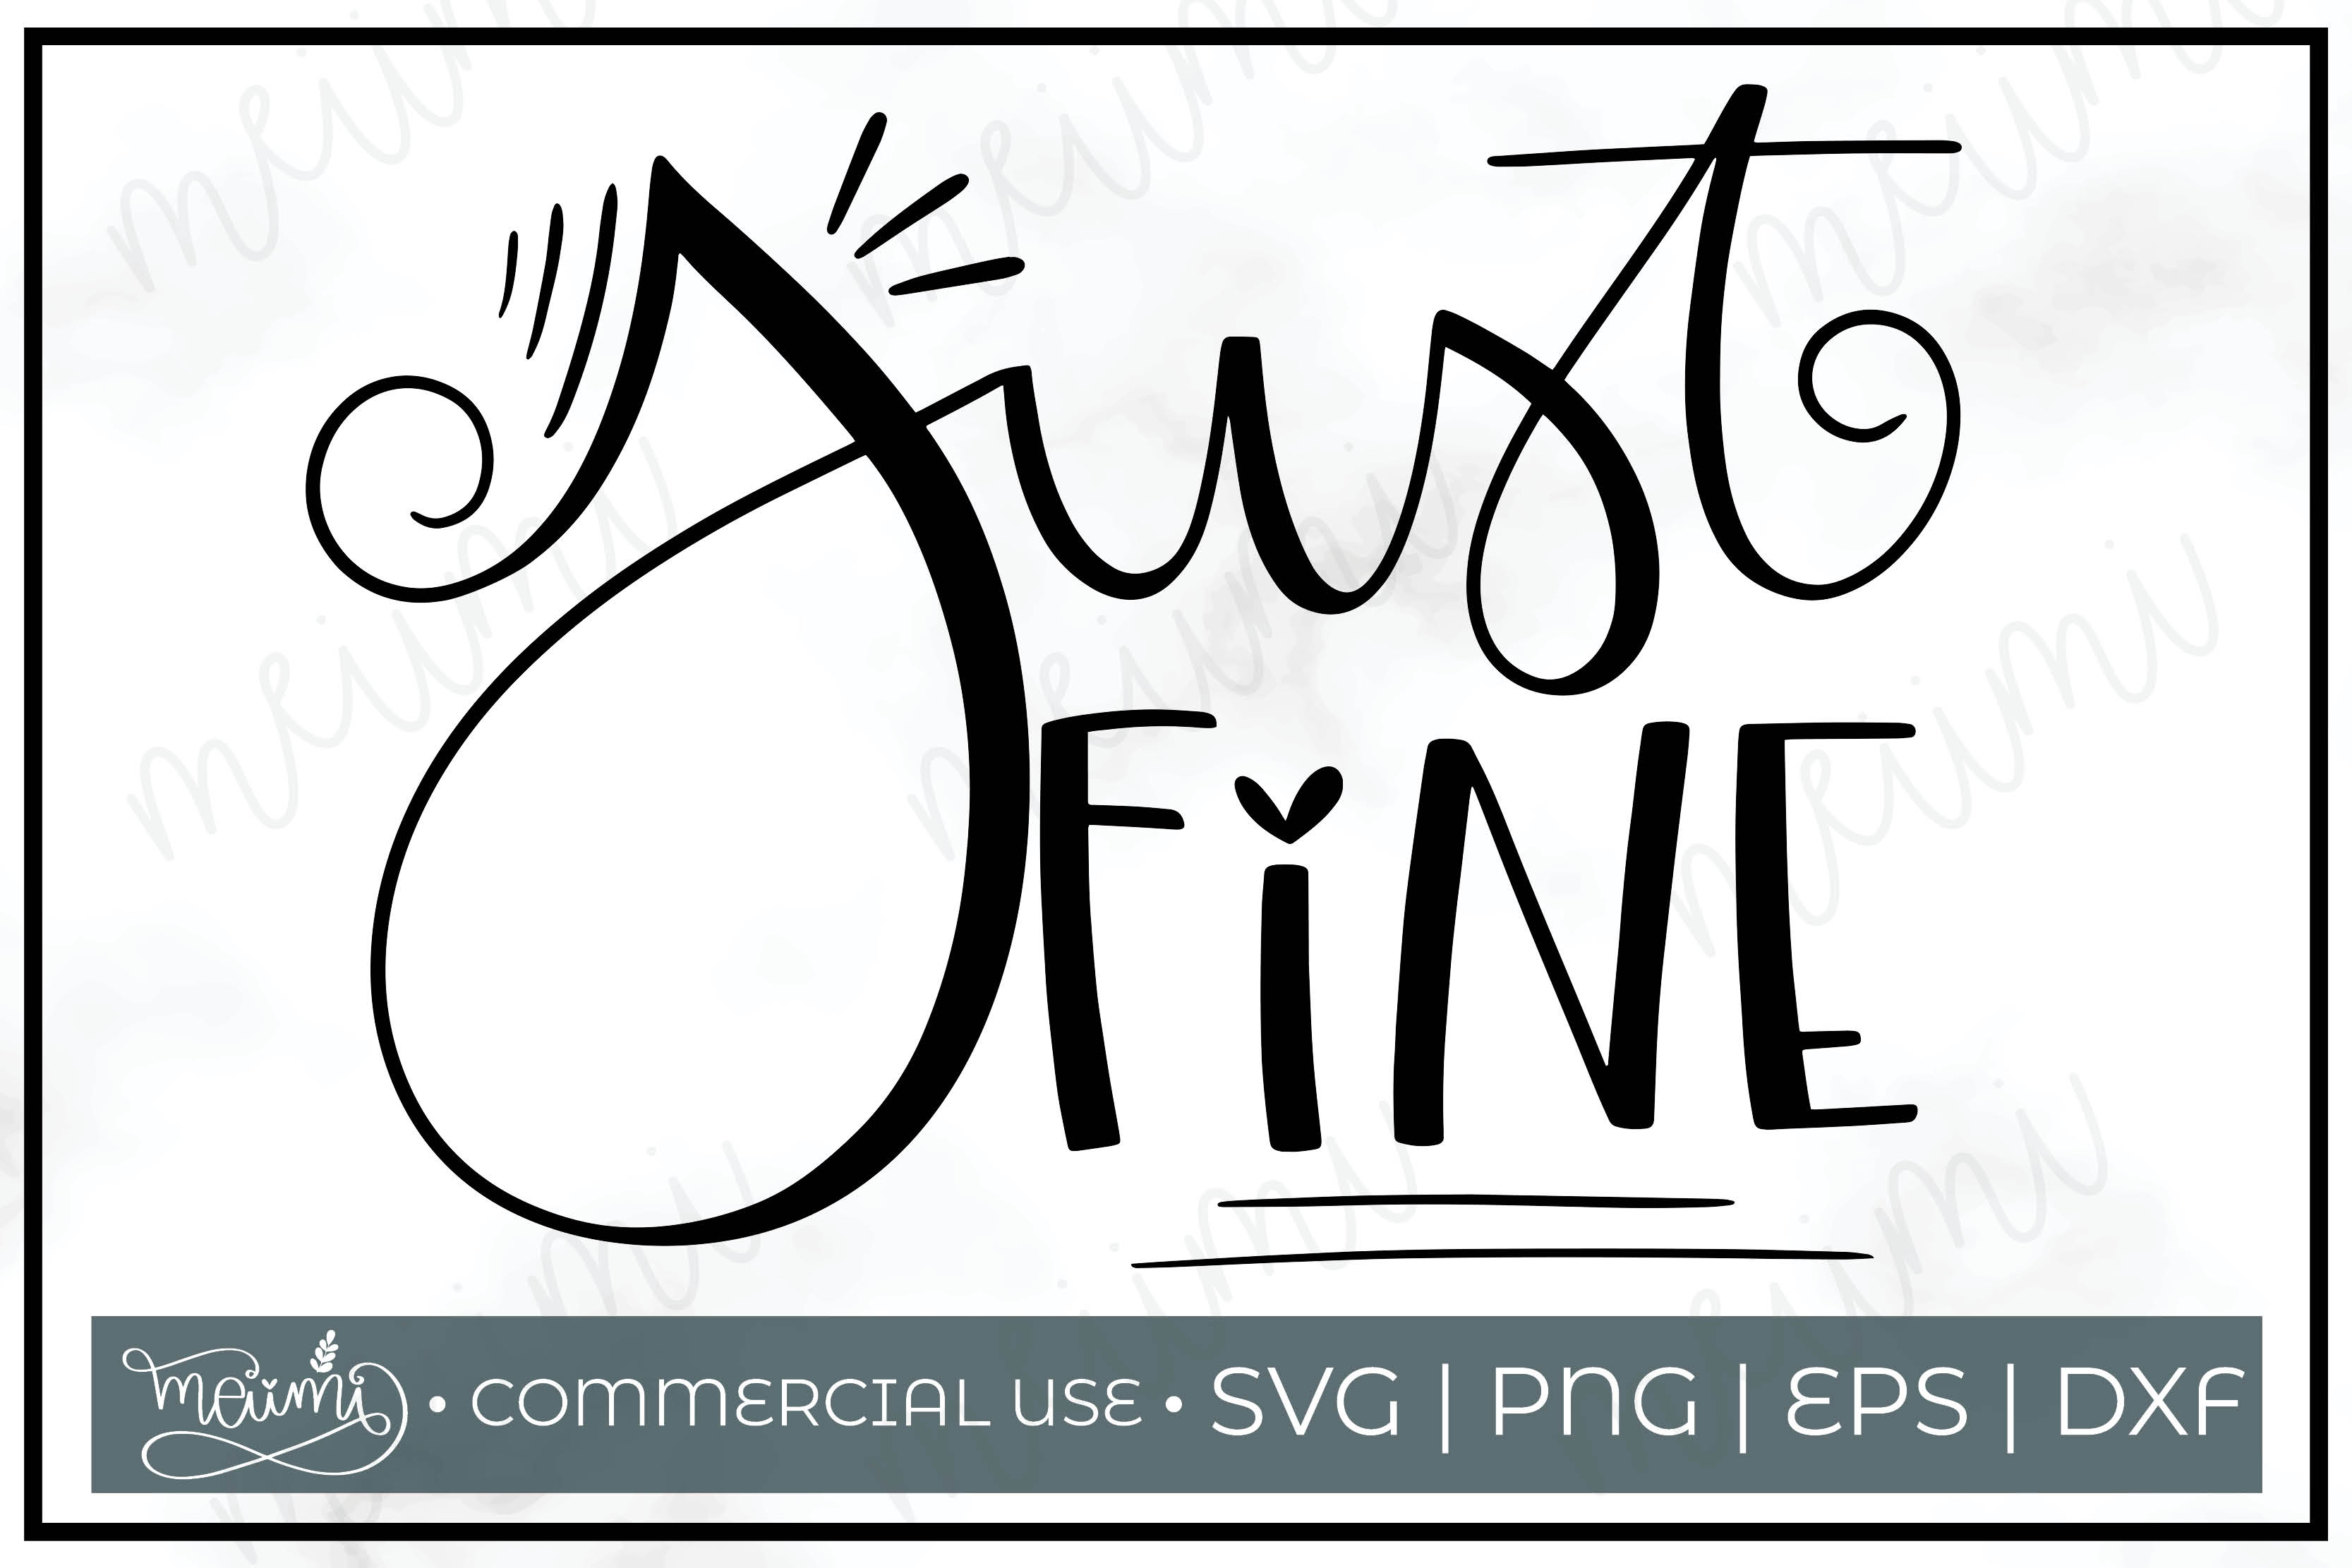 Download Free Just Fine Cut File Printable Graphic By Meiimi Creative Fabrica for Cricut Explore, Silhouette and other cutting machines.